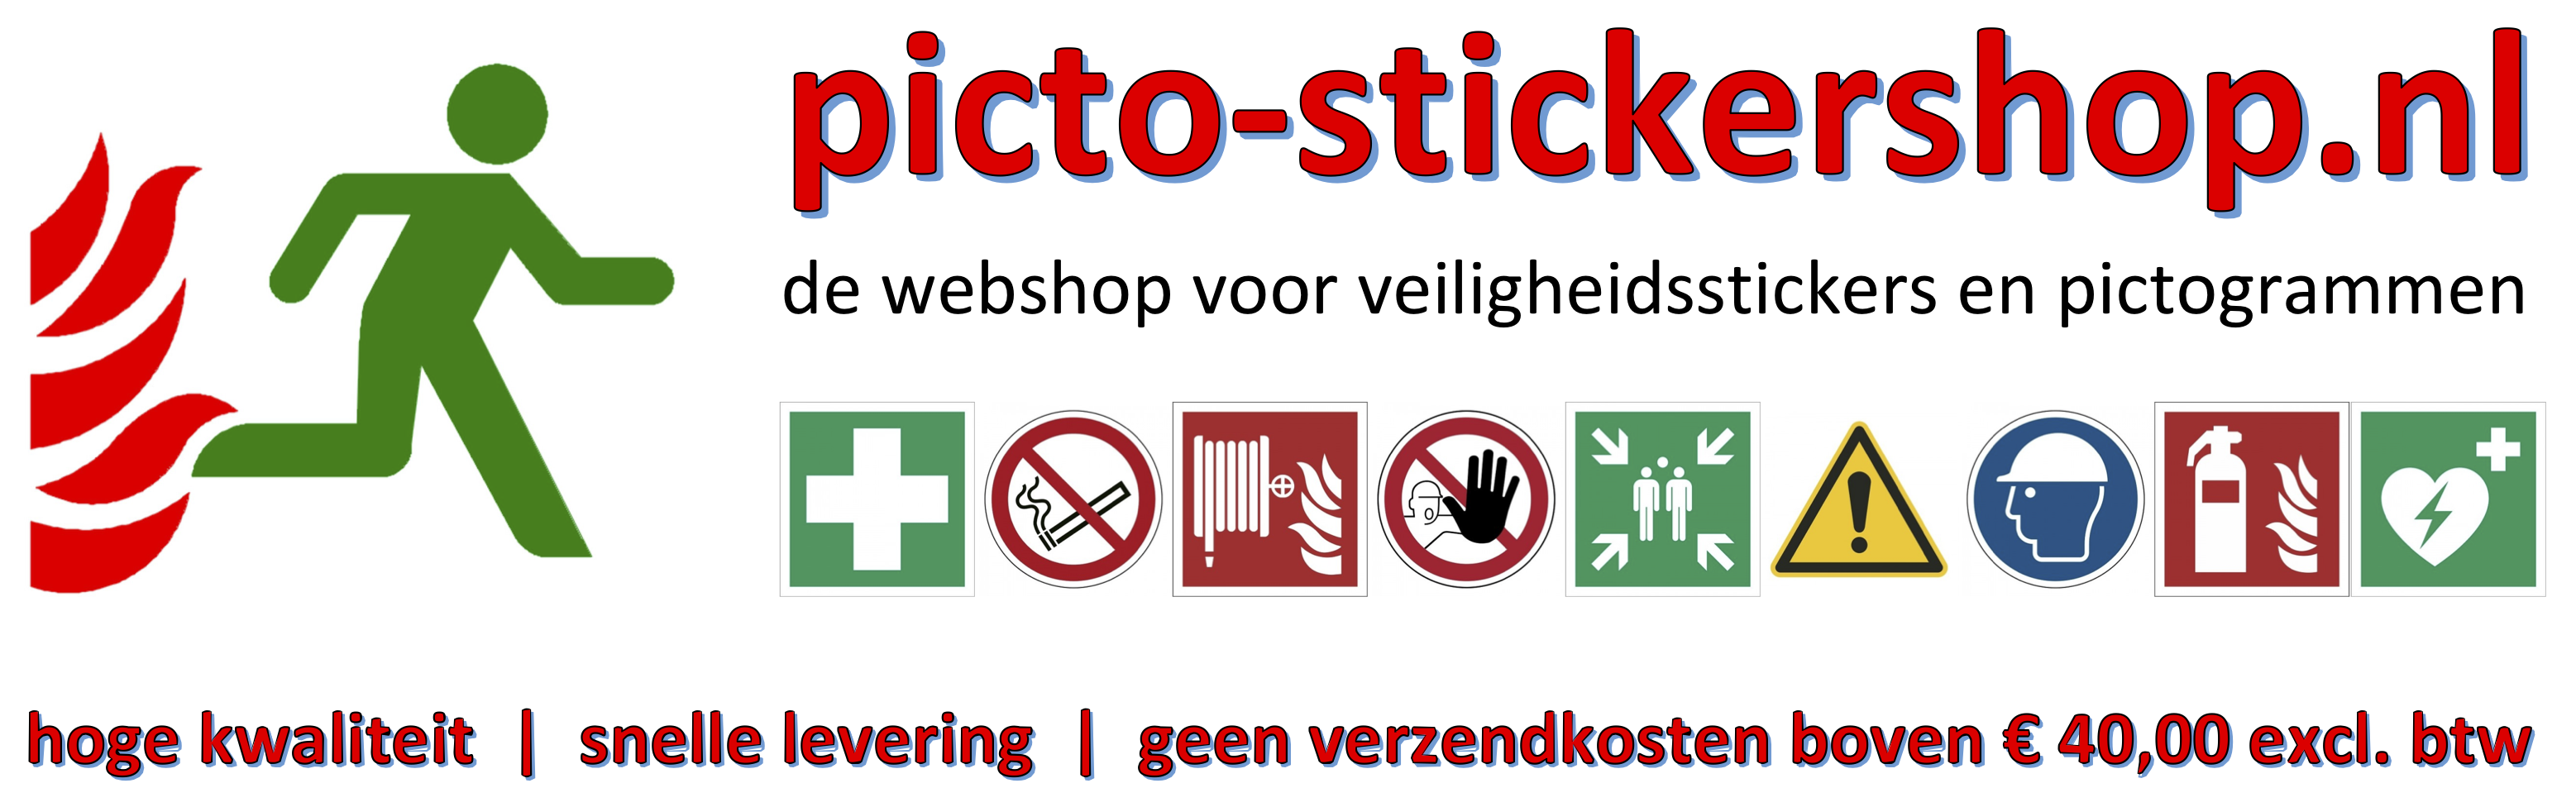 pictogrammen en stickers | picto-stickershop.nl -